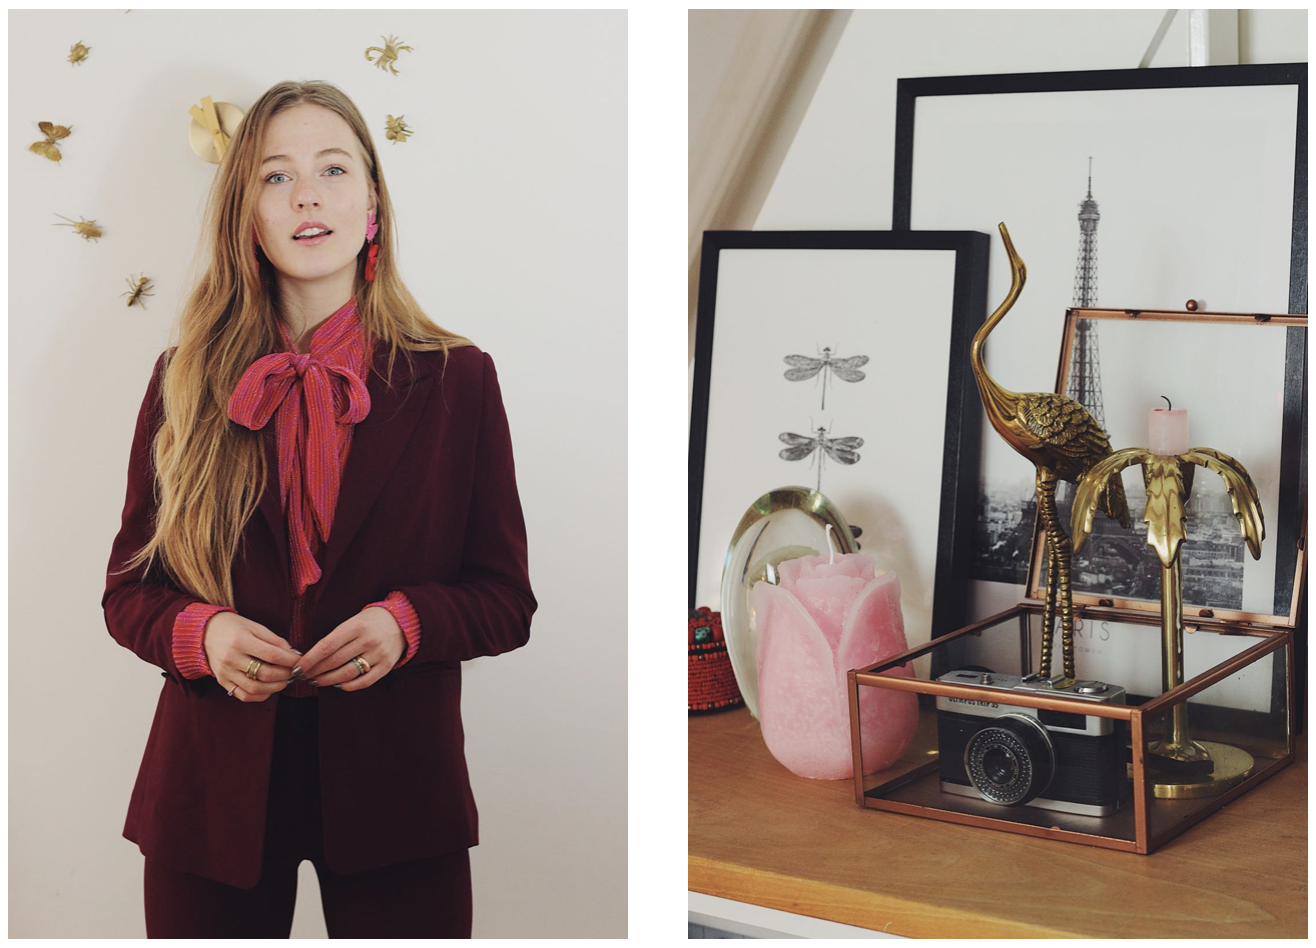 floortjeloves, daylliance, een kijkje in de kast van, closet tour, interview